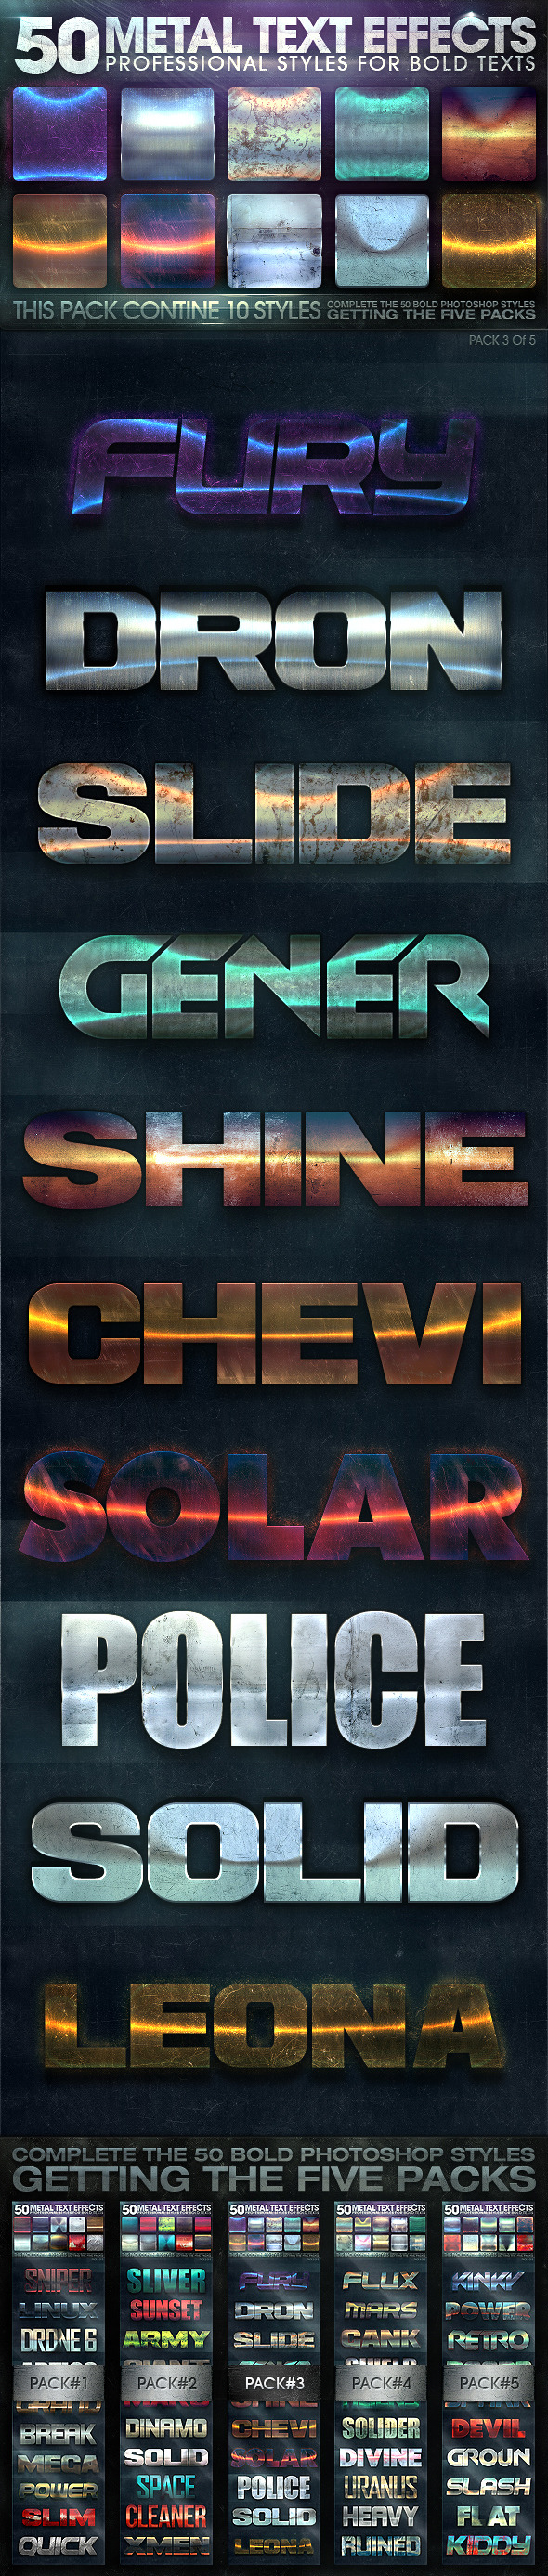 GraphicRiver 50 Metal Text Effects 3 of 5 10697920